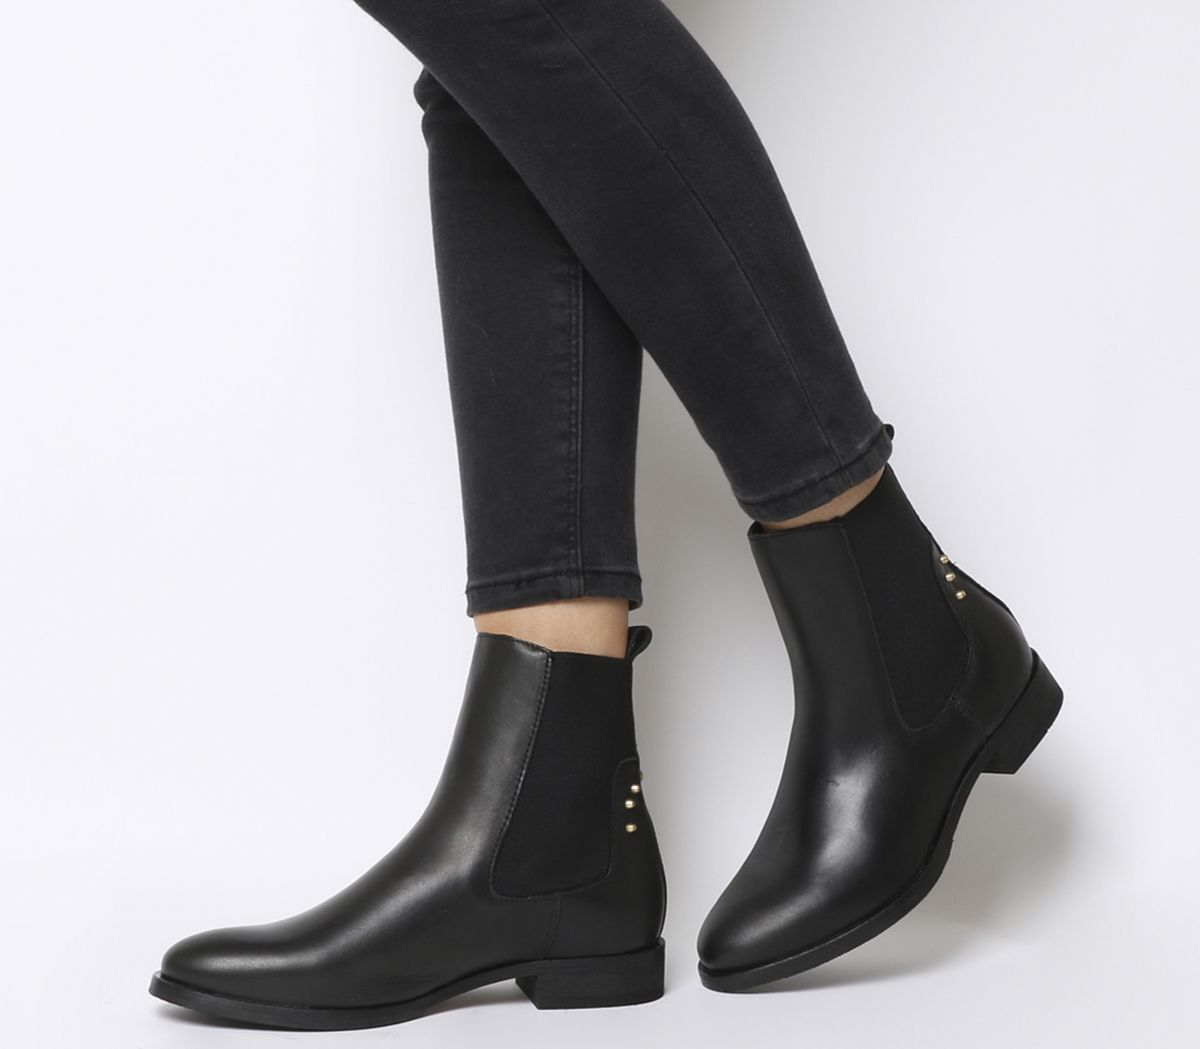 fb26700d7cf Shoe the Bear Marla Chelsea Boots Black Leather - Womens Boots